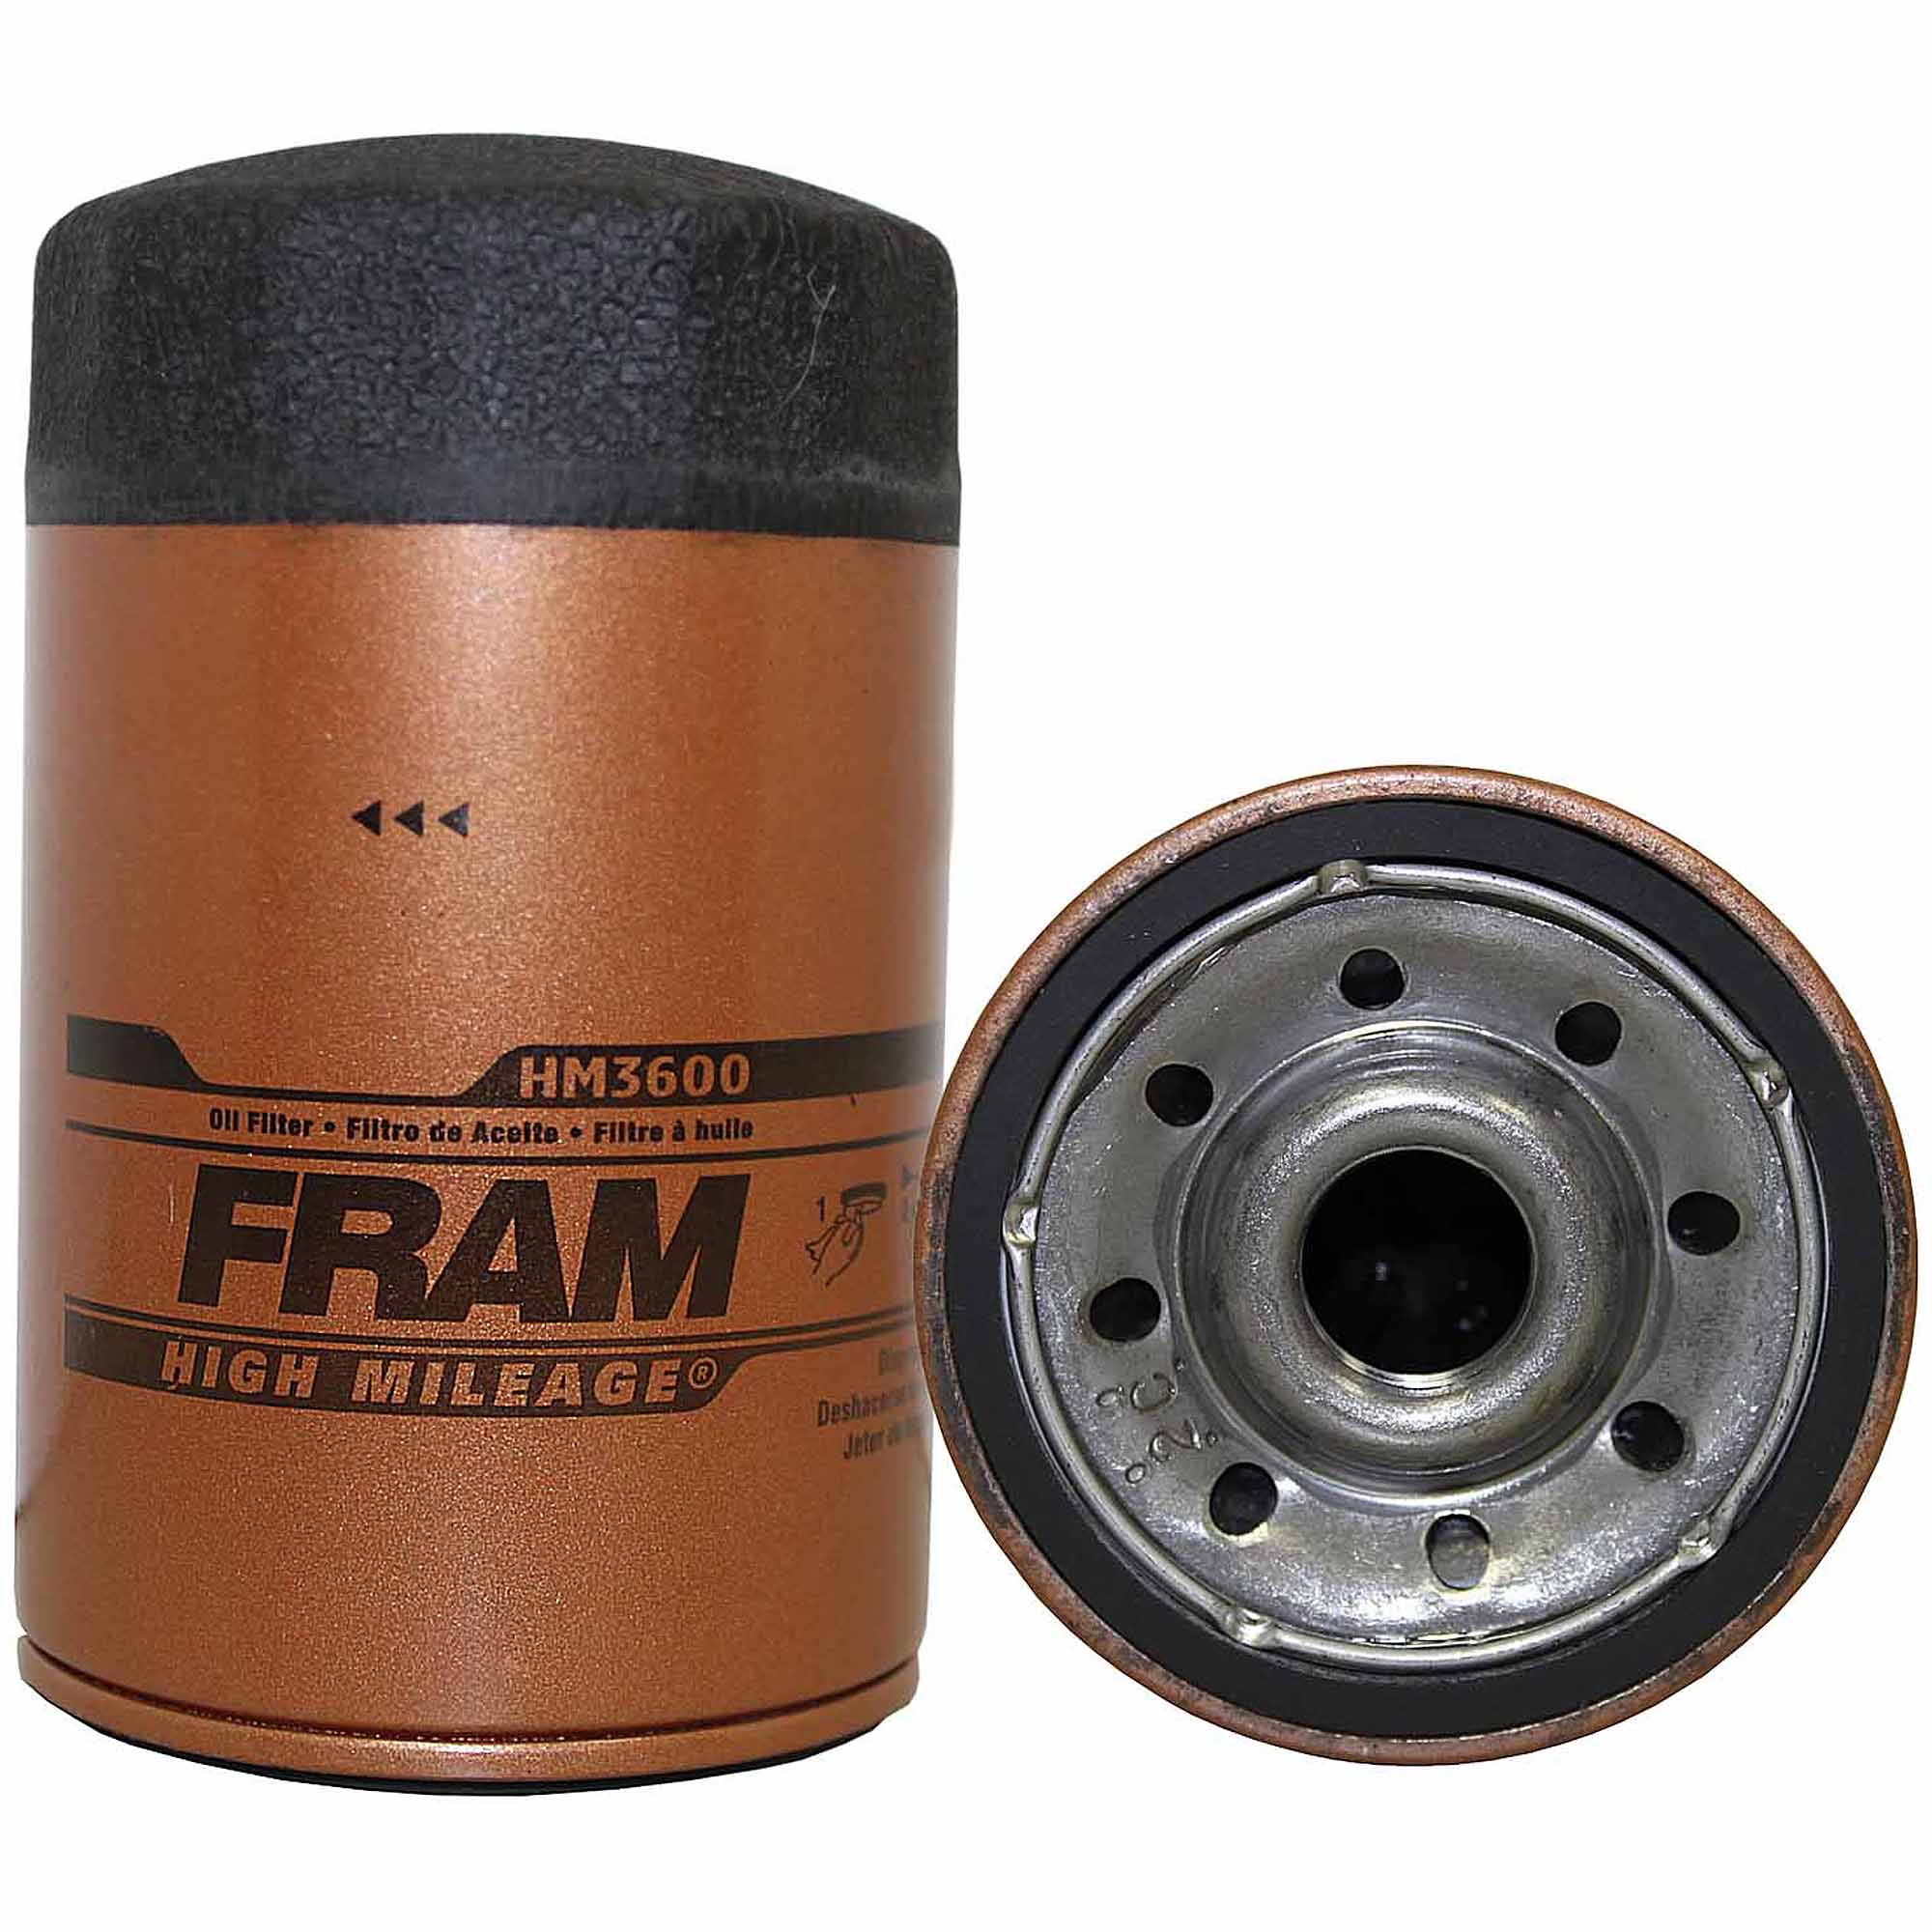 FRAM High Mileage Oil Filter, HM3600